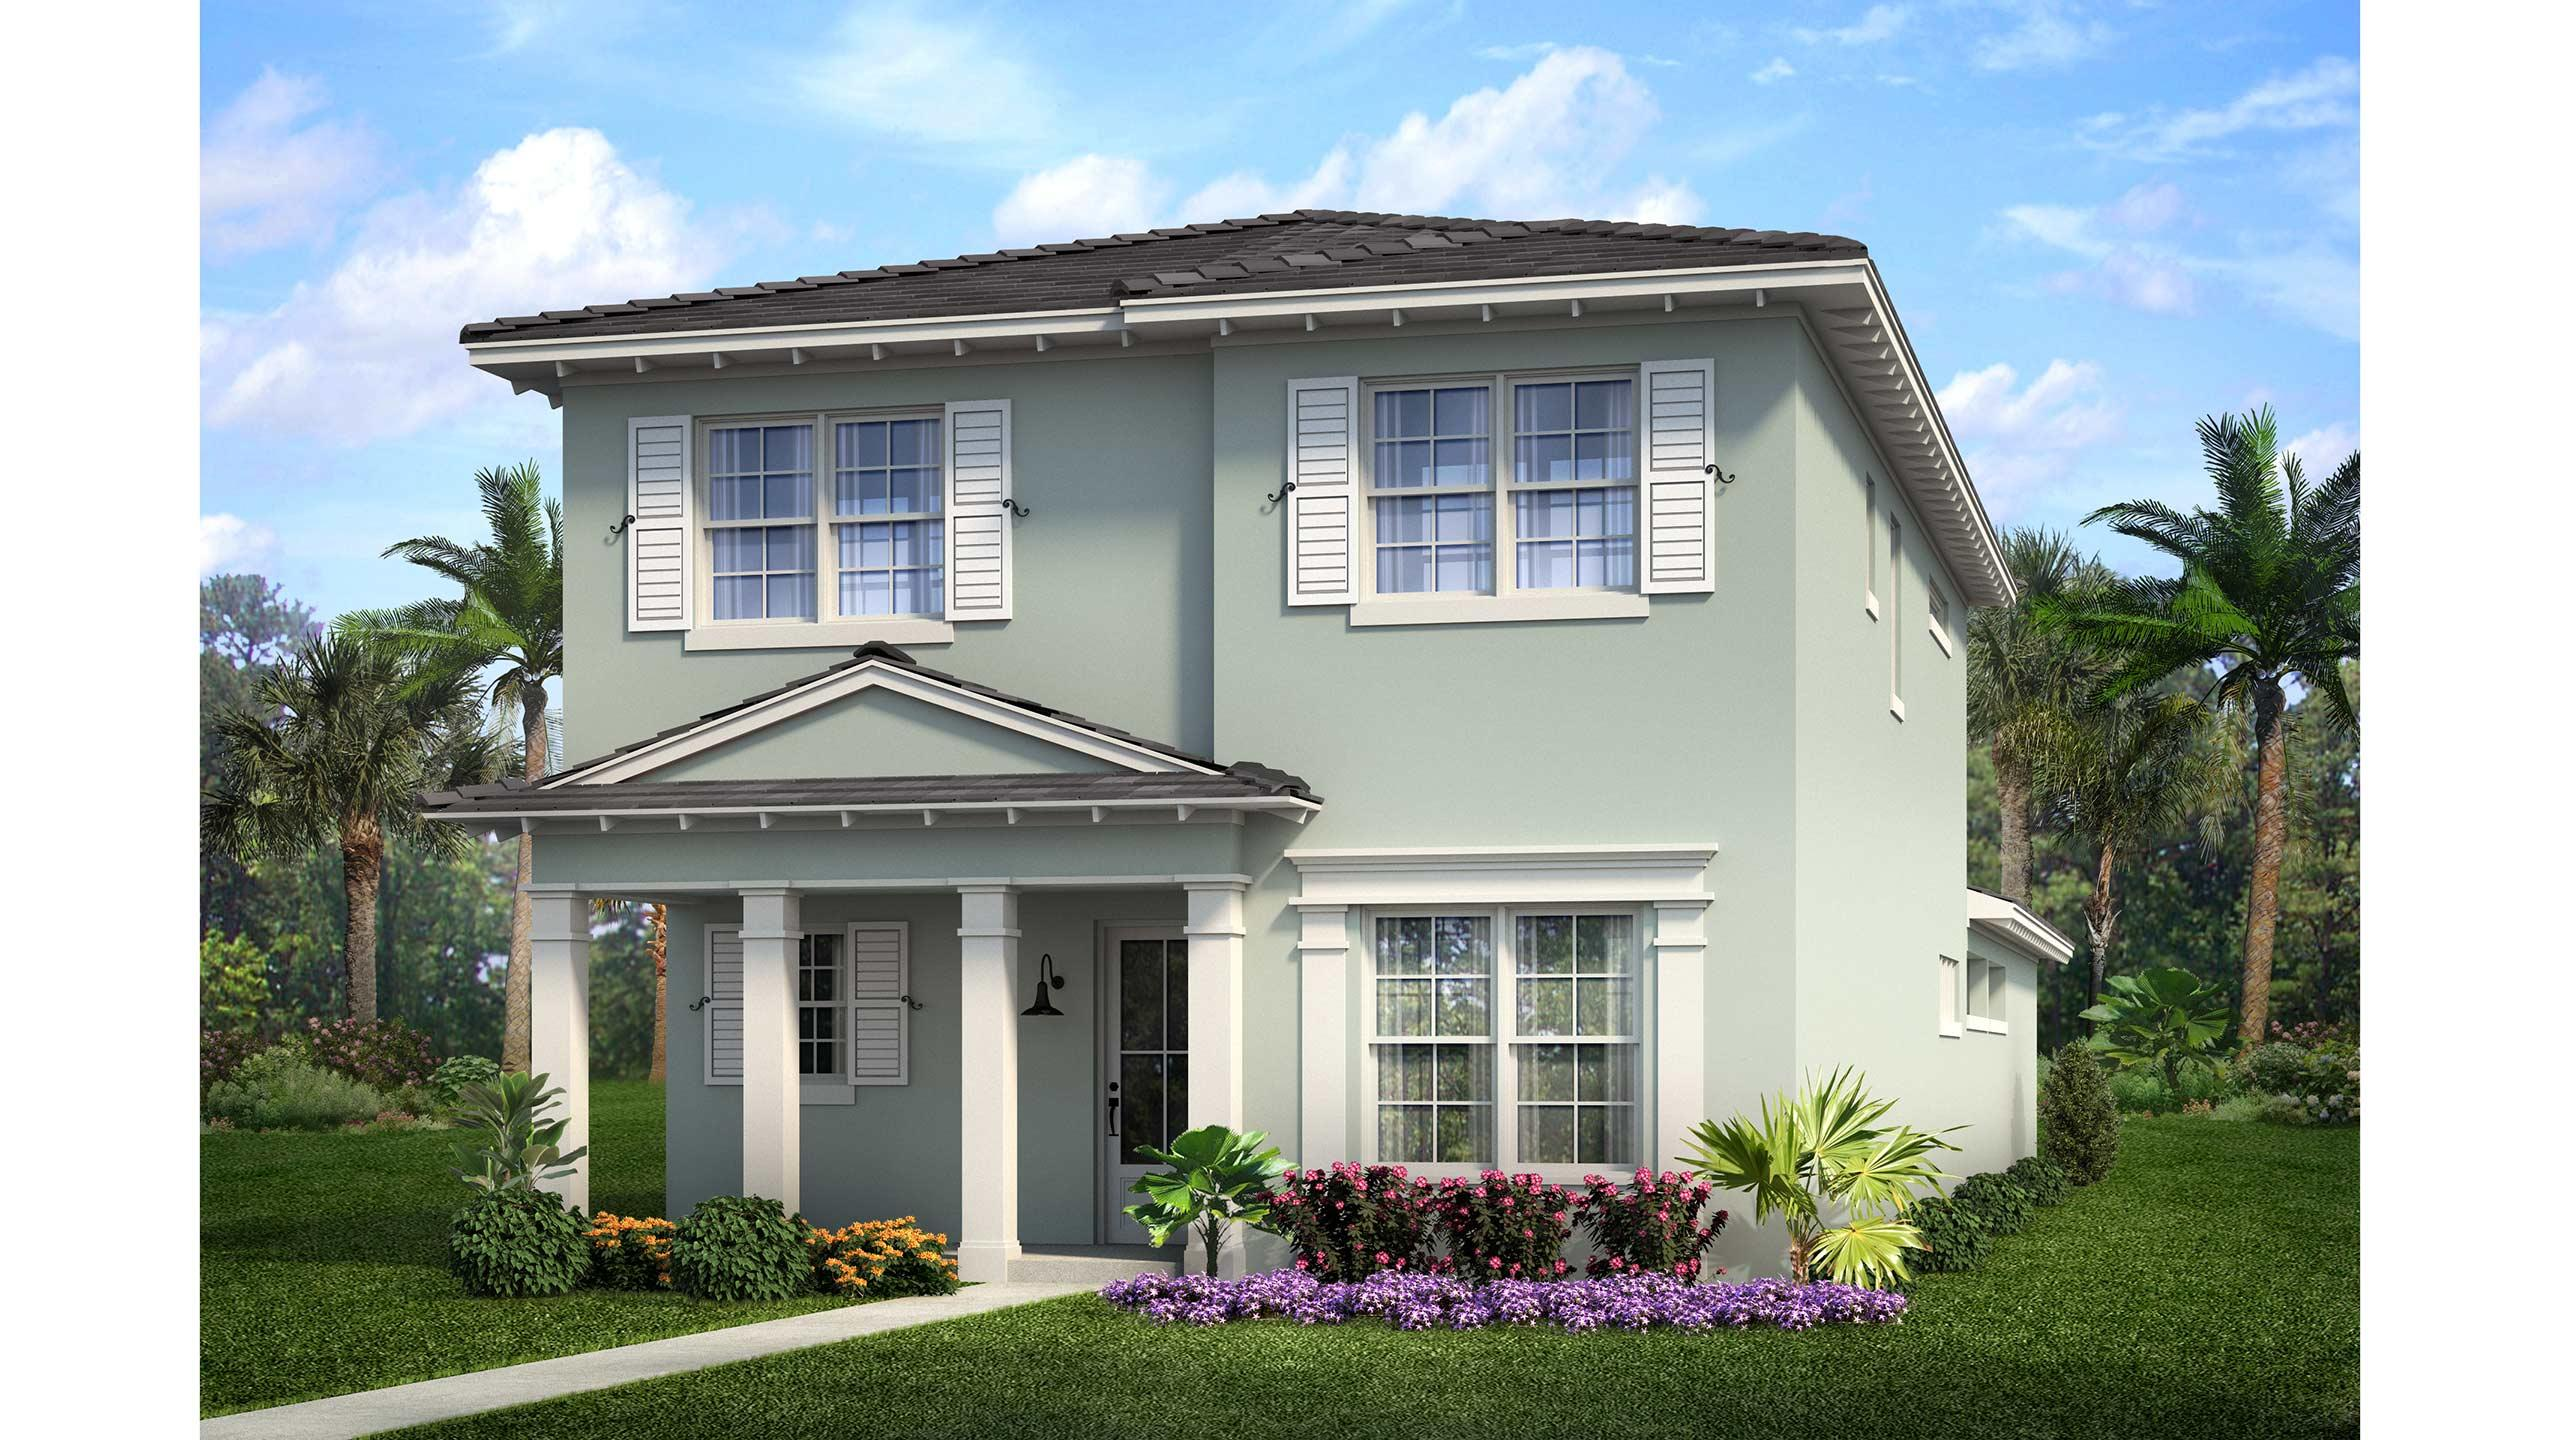 New Home for sale at 8059 Hobbes Way in Palm Beach Gardens